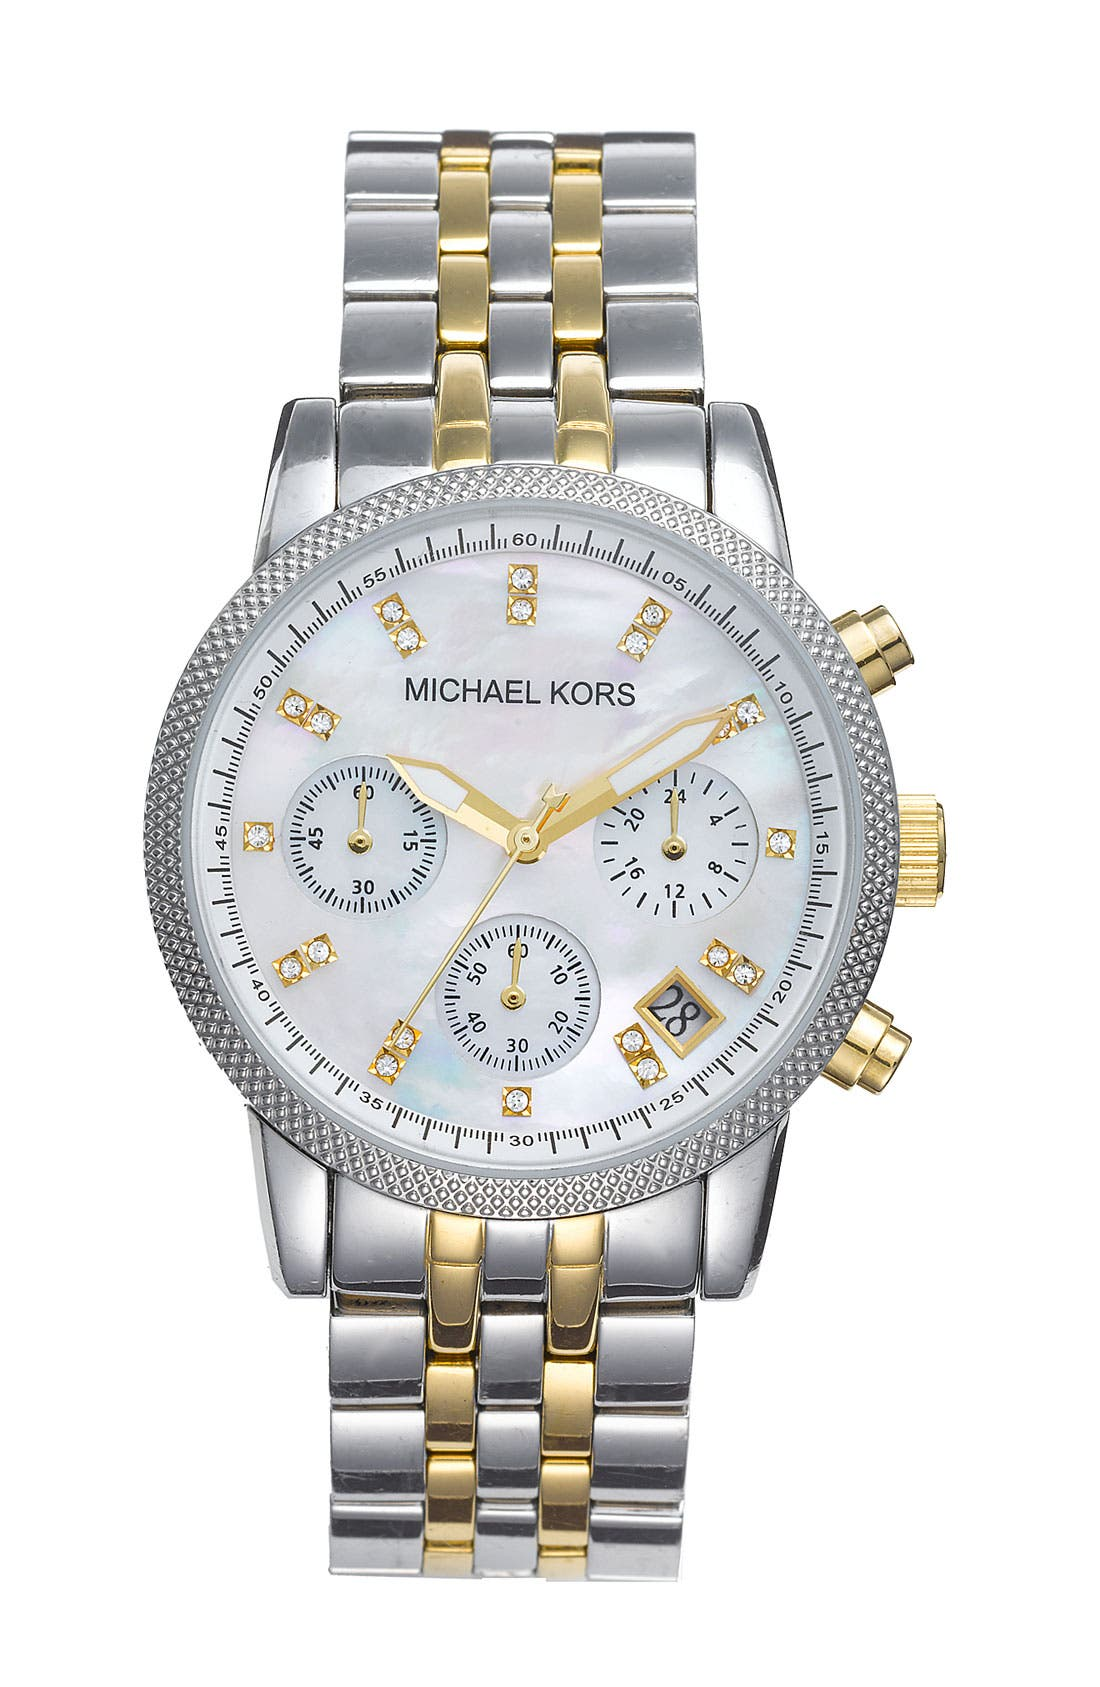 Main Image - Michael Kors 'The Ritz' Chronograph Bracelet Watch, 36mm